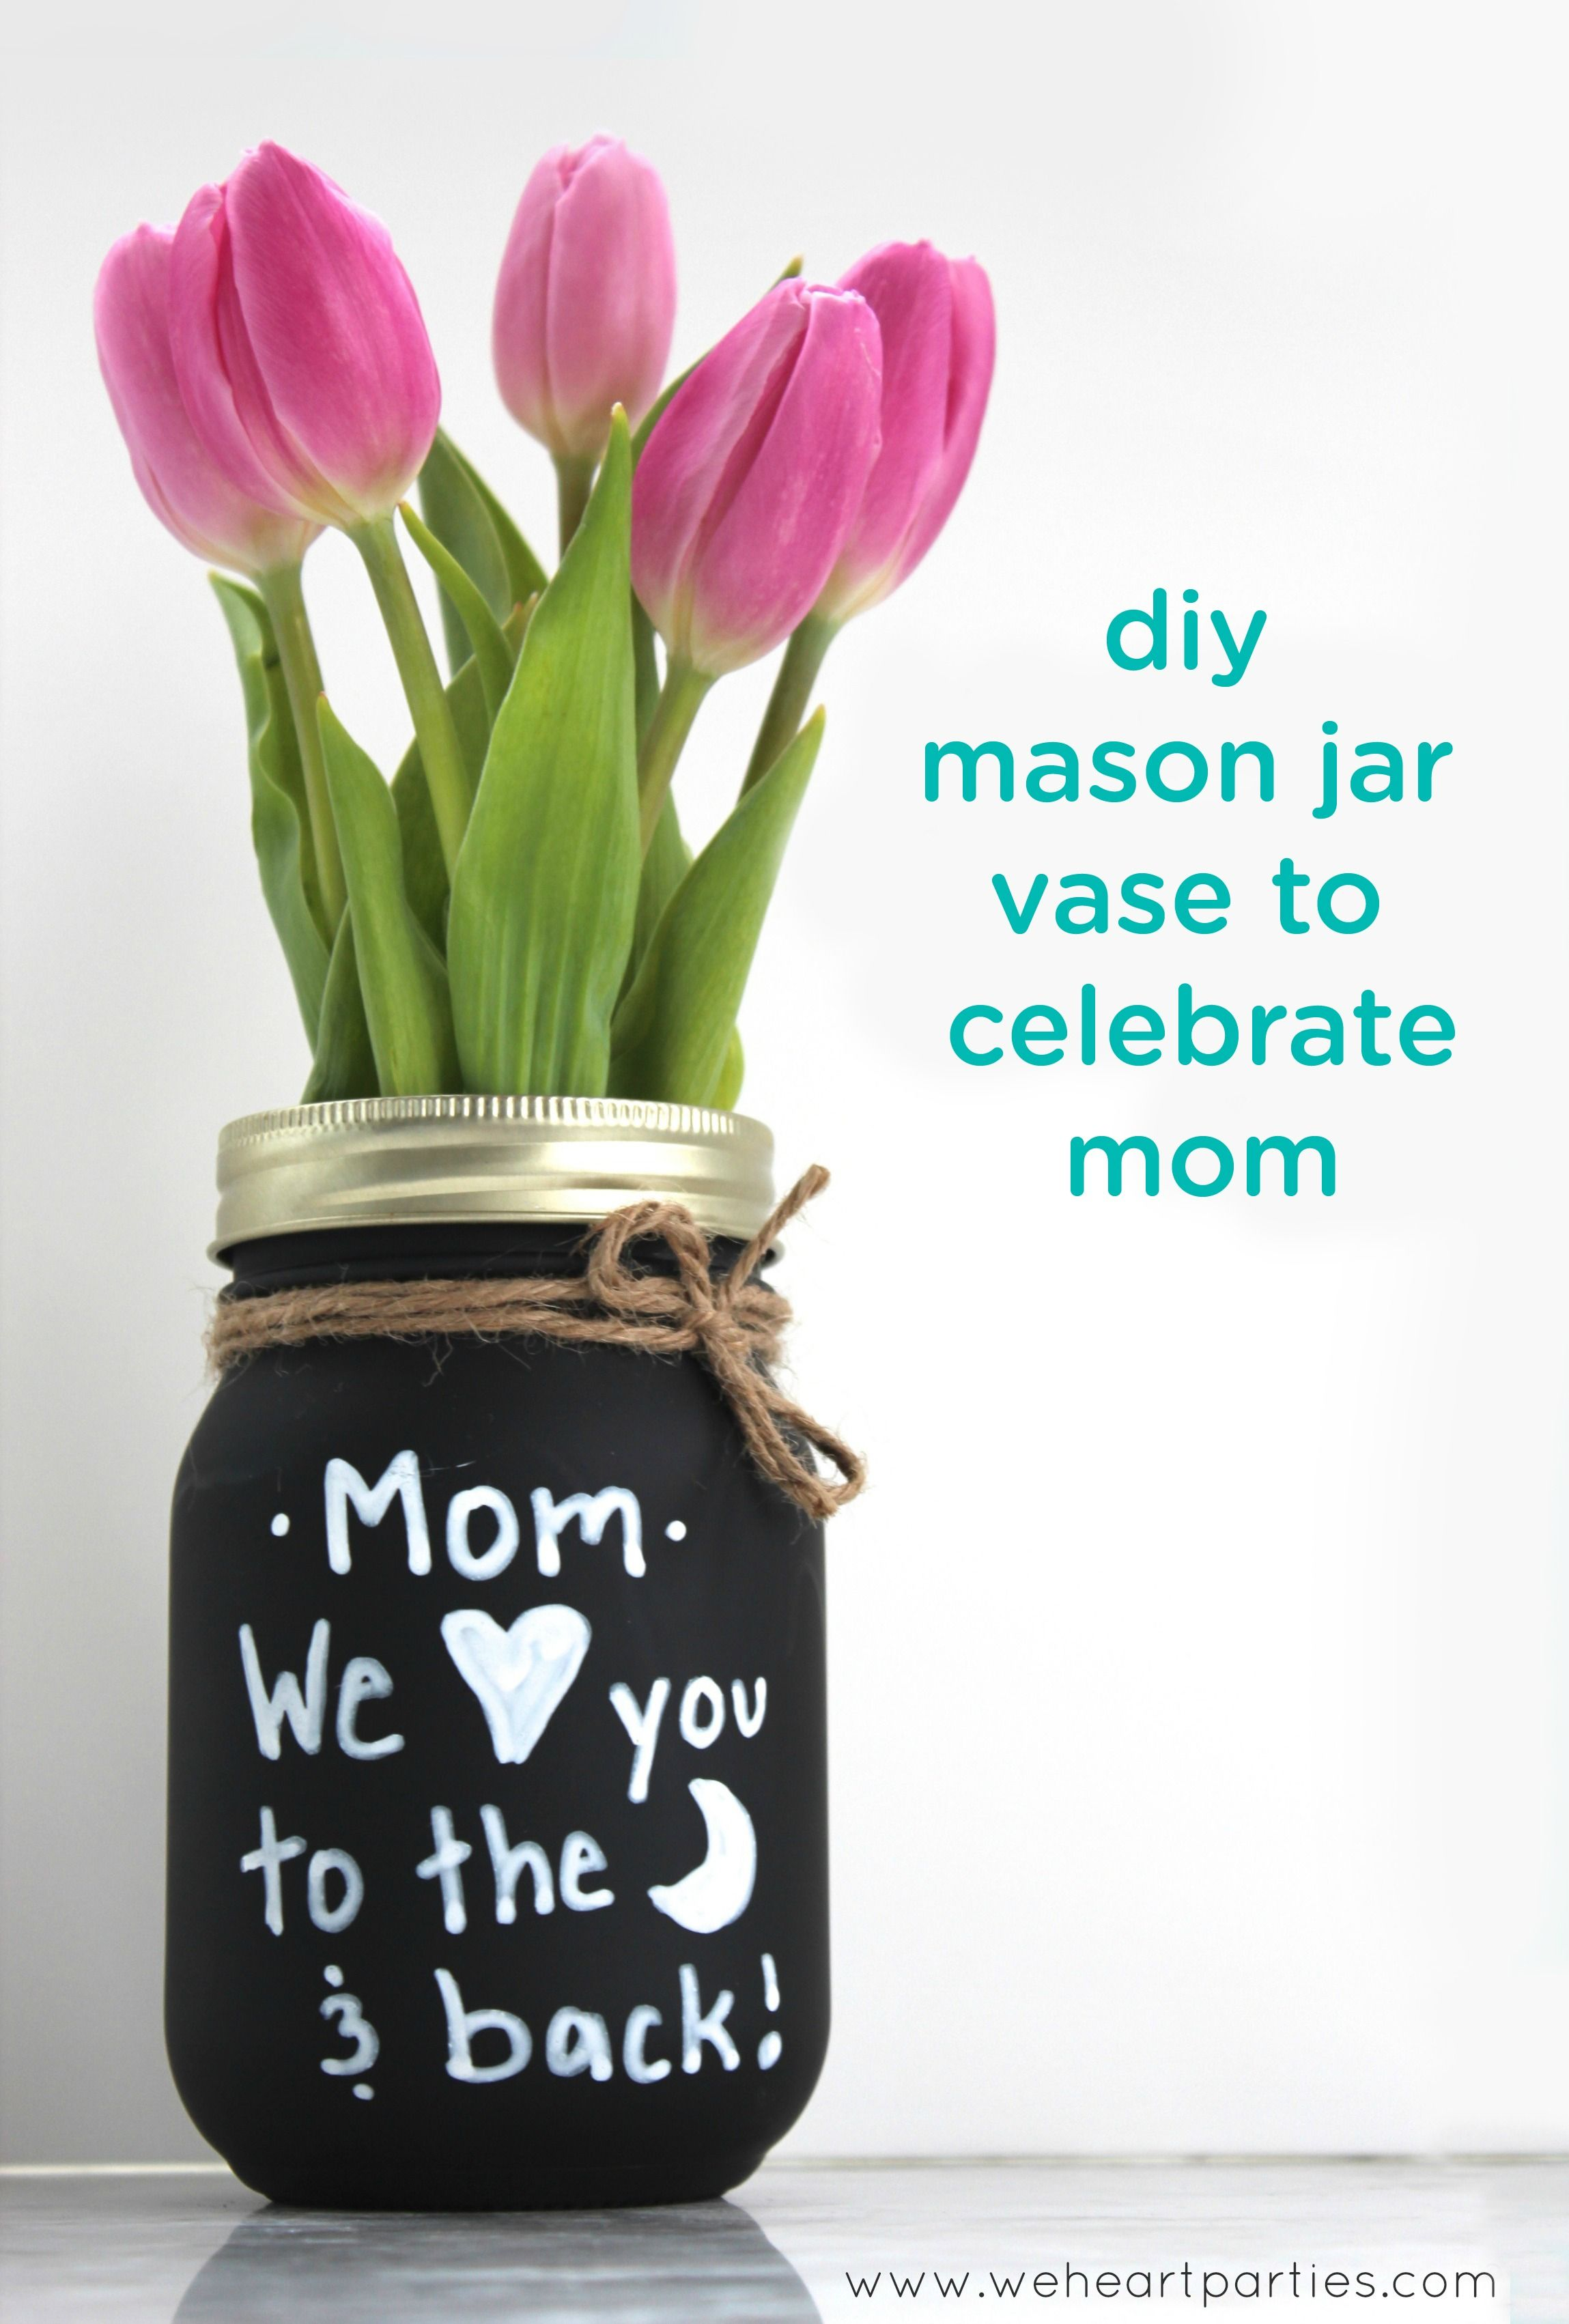 Celebrate all the wonderful moms in your life with with